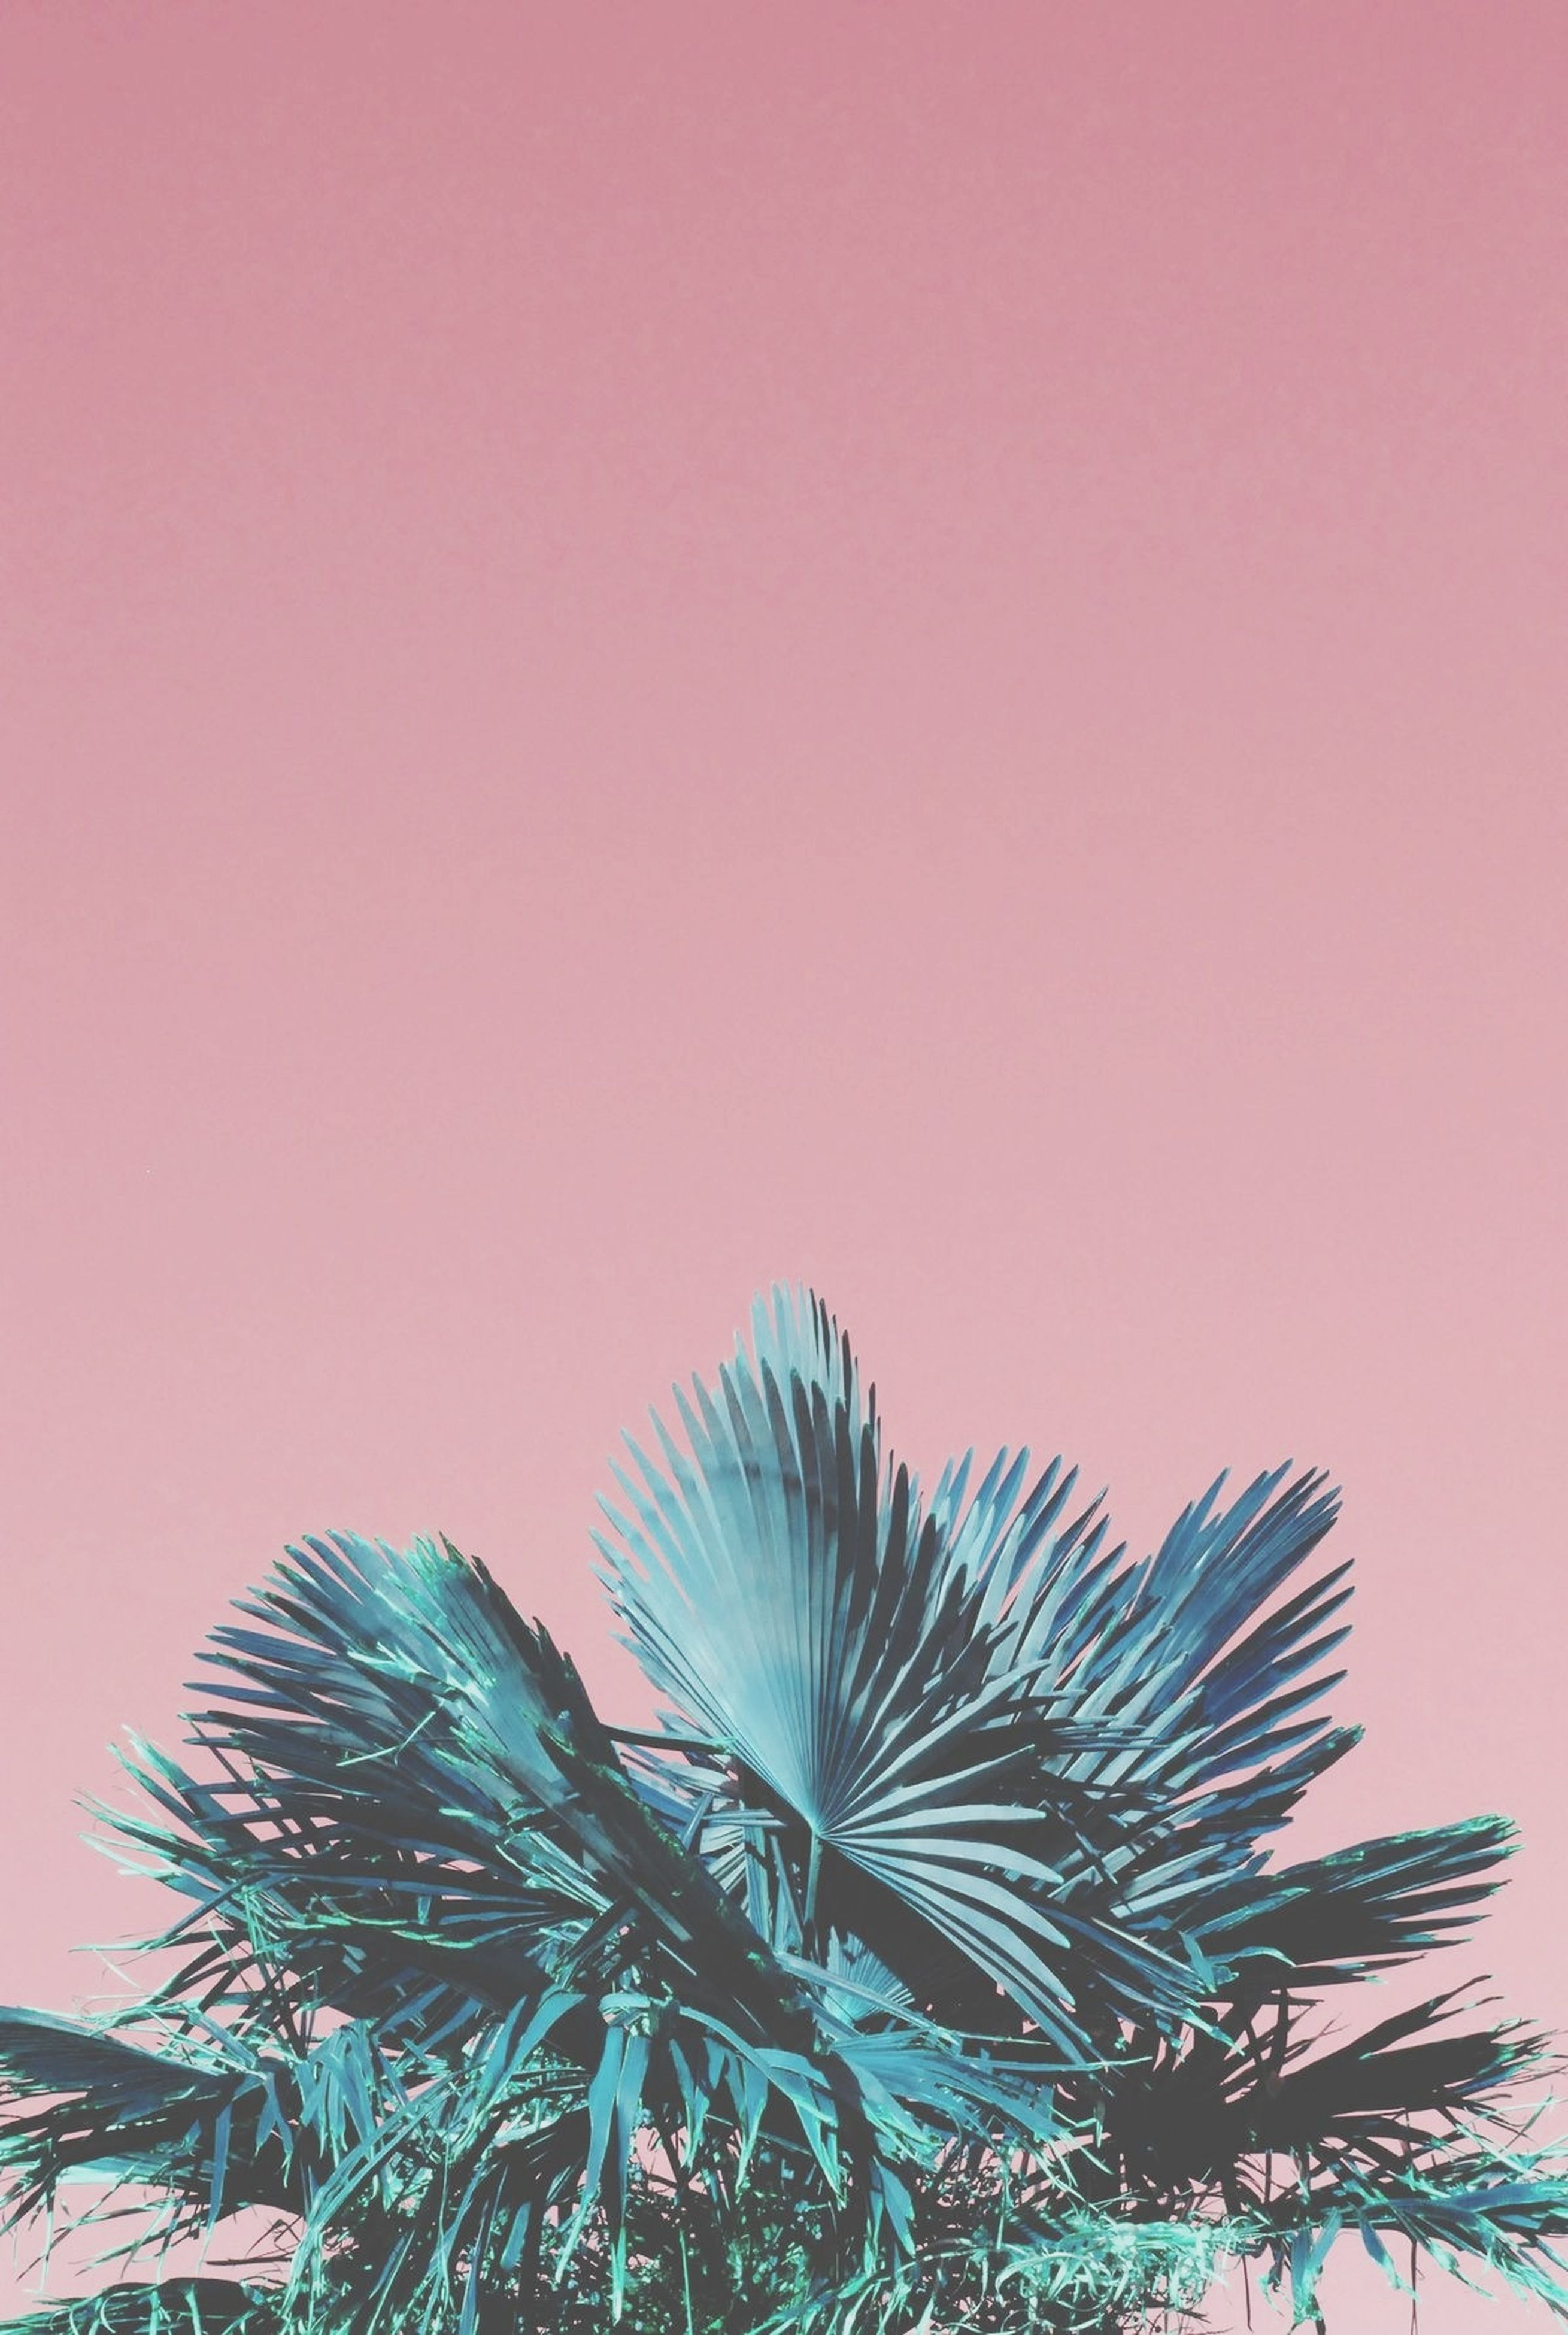 palm tree, low angle view, tree, clear sky, growth, beauty in nature, nature, tranquility, sky, copy space, high section, leaf, scenics, branch, outdoors, no people, silhouette, palm leaf, tranquil scene, treetop